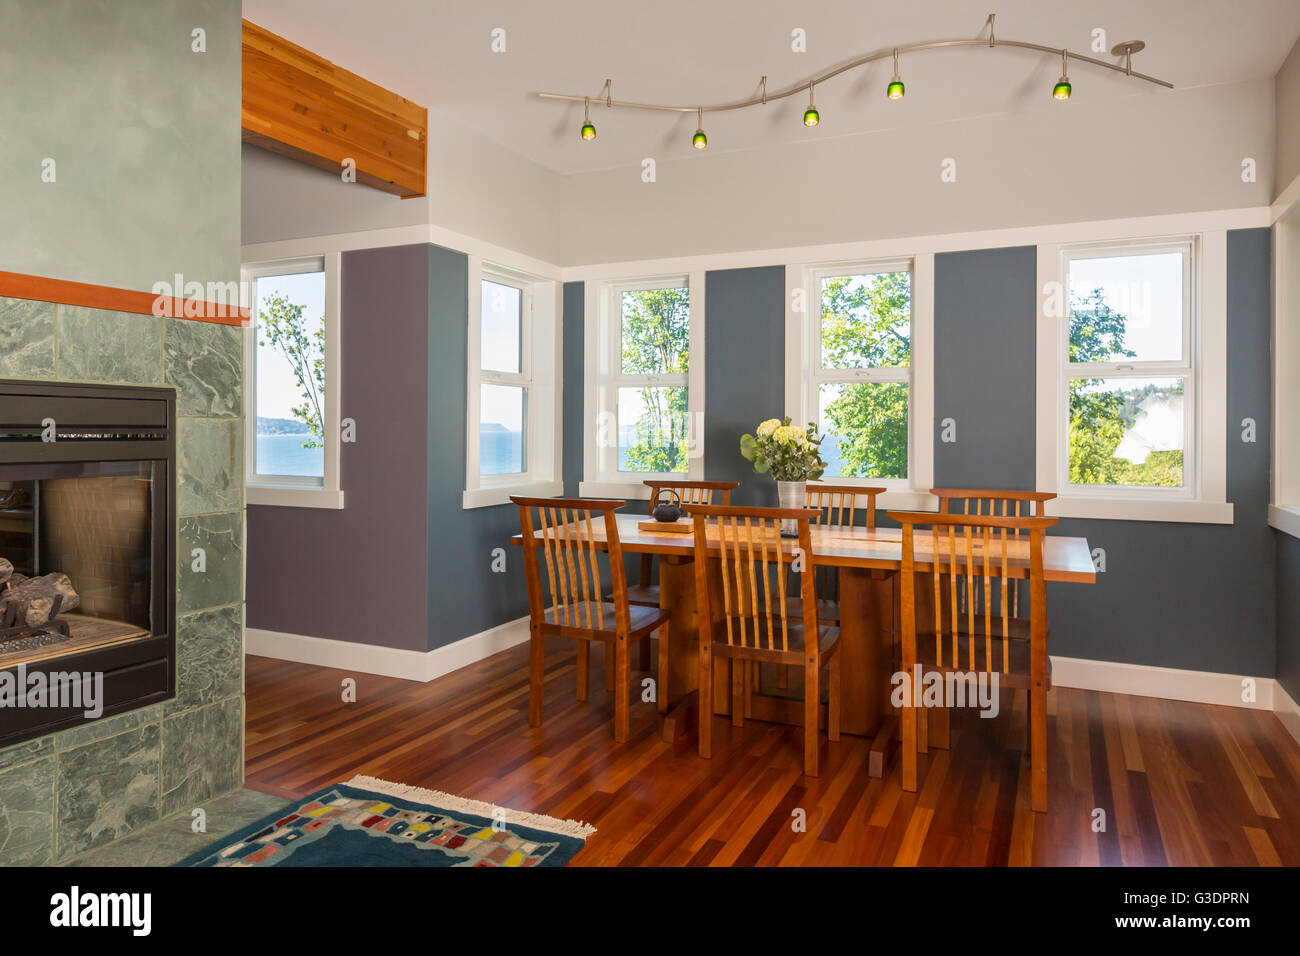 Dining area table & chairs with wood floors, painted walls, accent lighting & view windows in contemporary - Stock Image